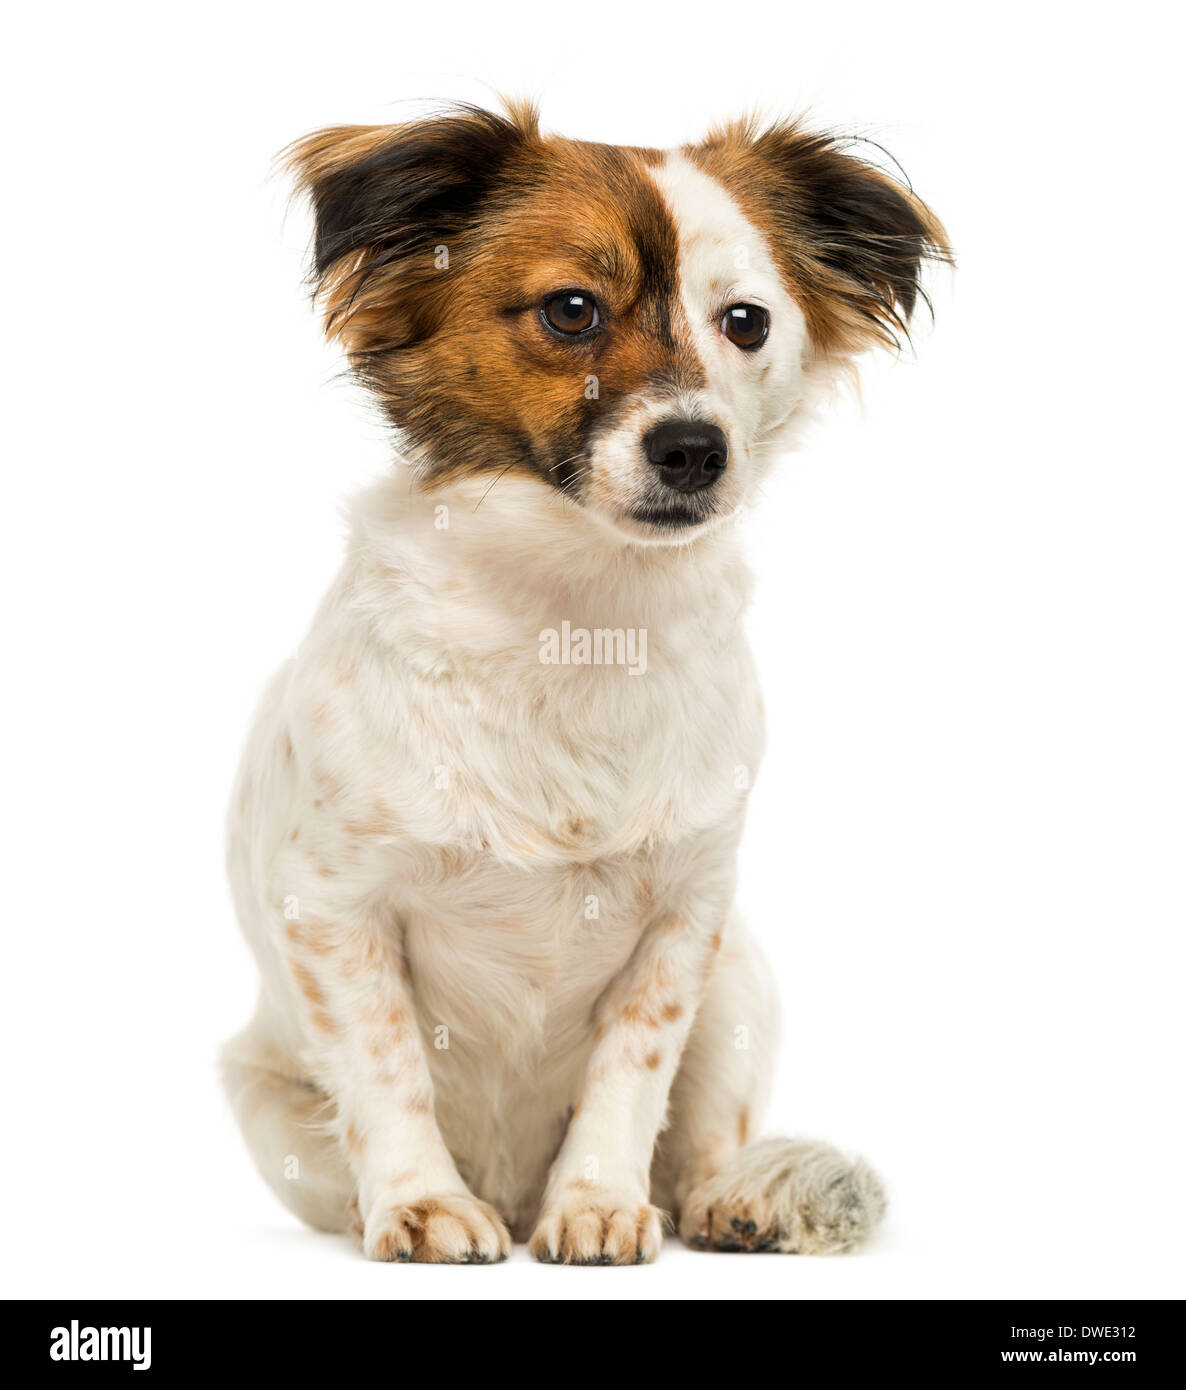 Crossbreed dog sitting, 2 years old, against white background Stock Photo